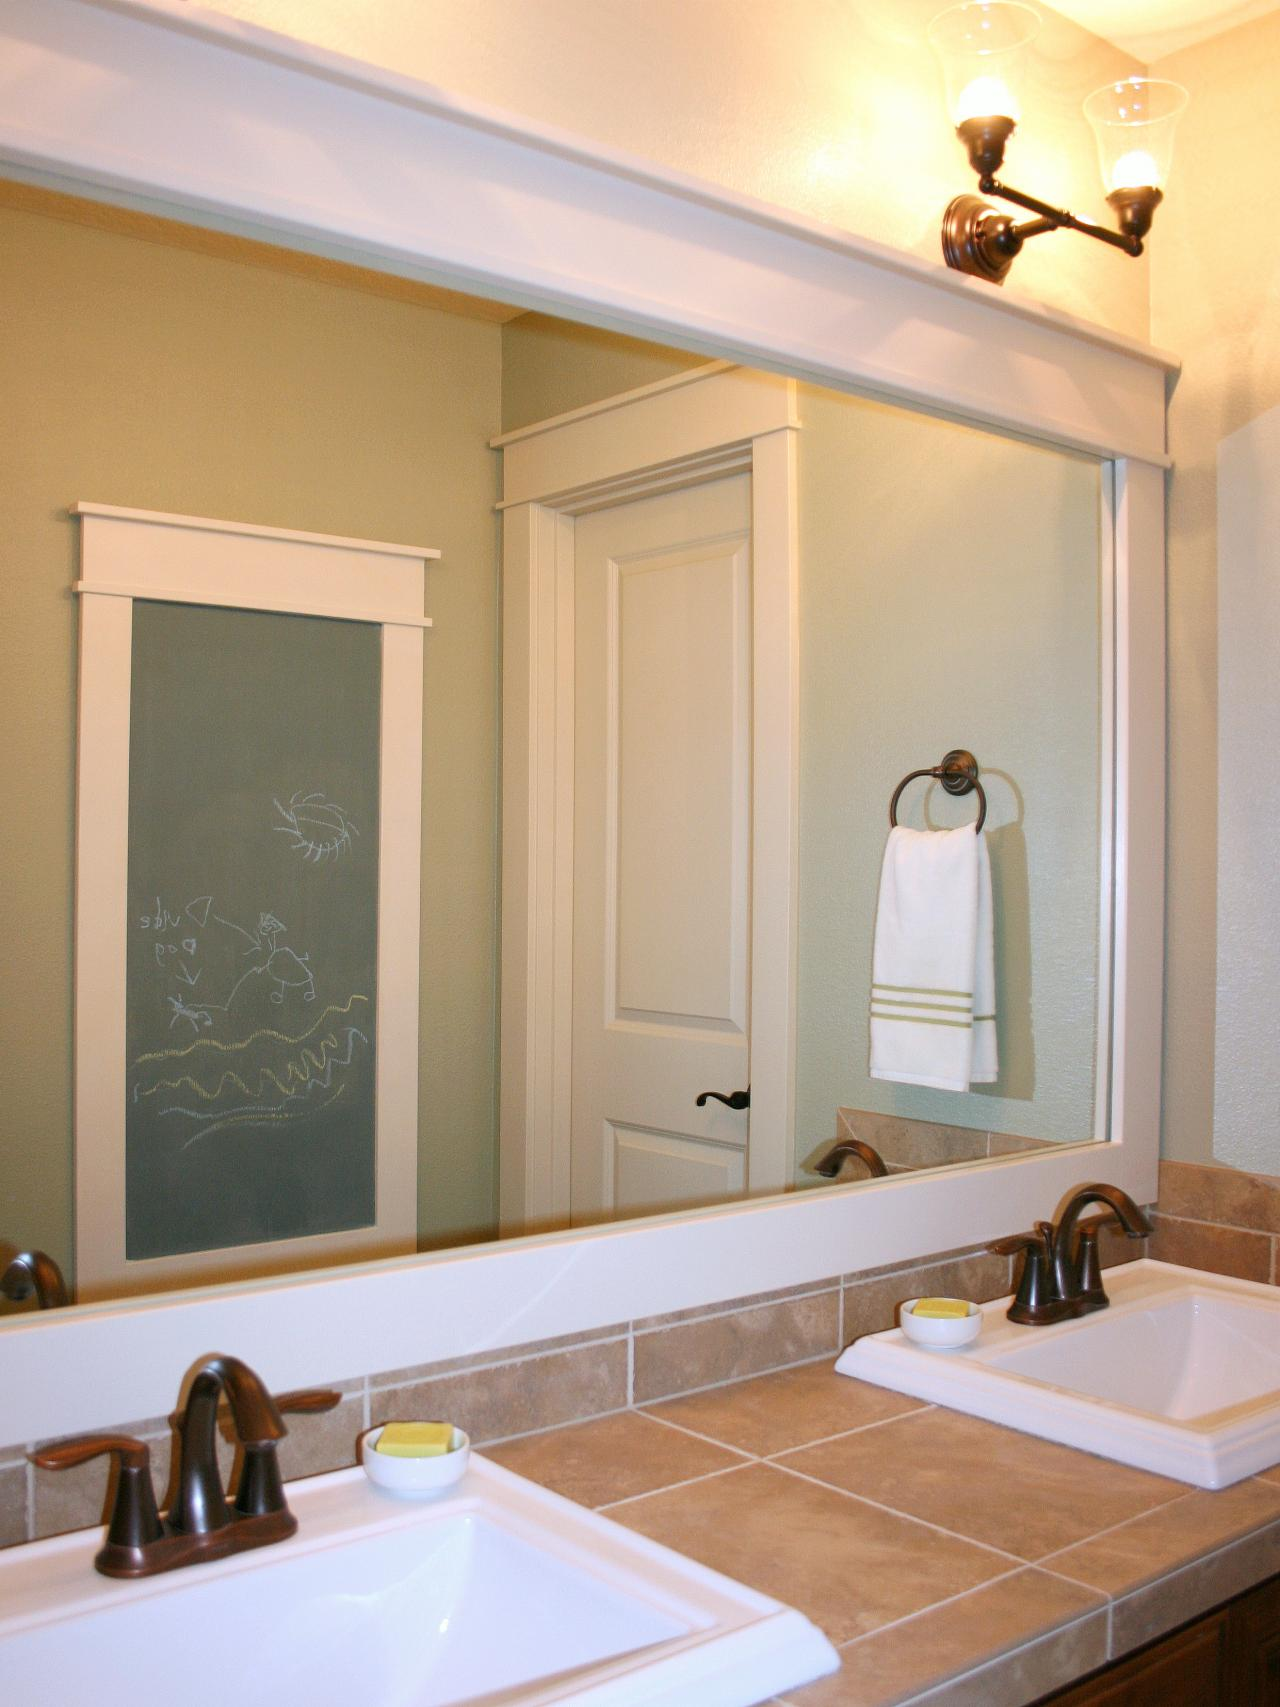 Framed bathroom mirrors ideas - How To Frame A Mirror